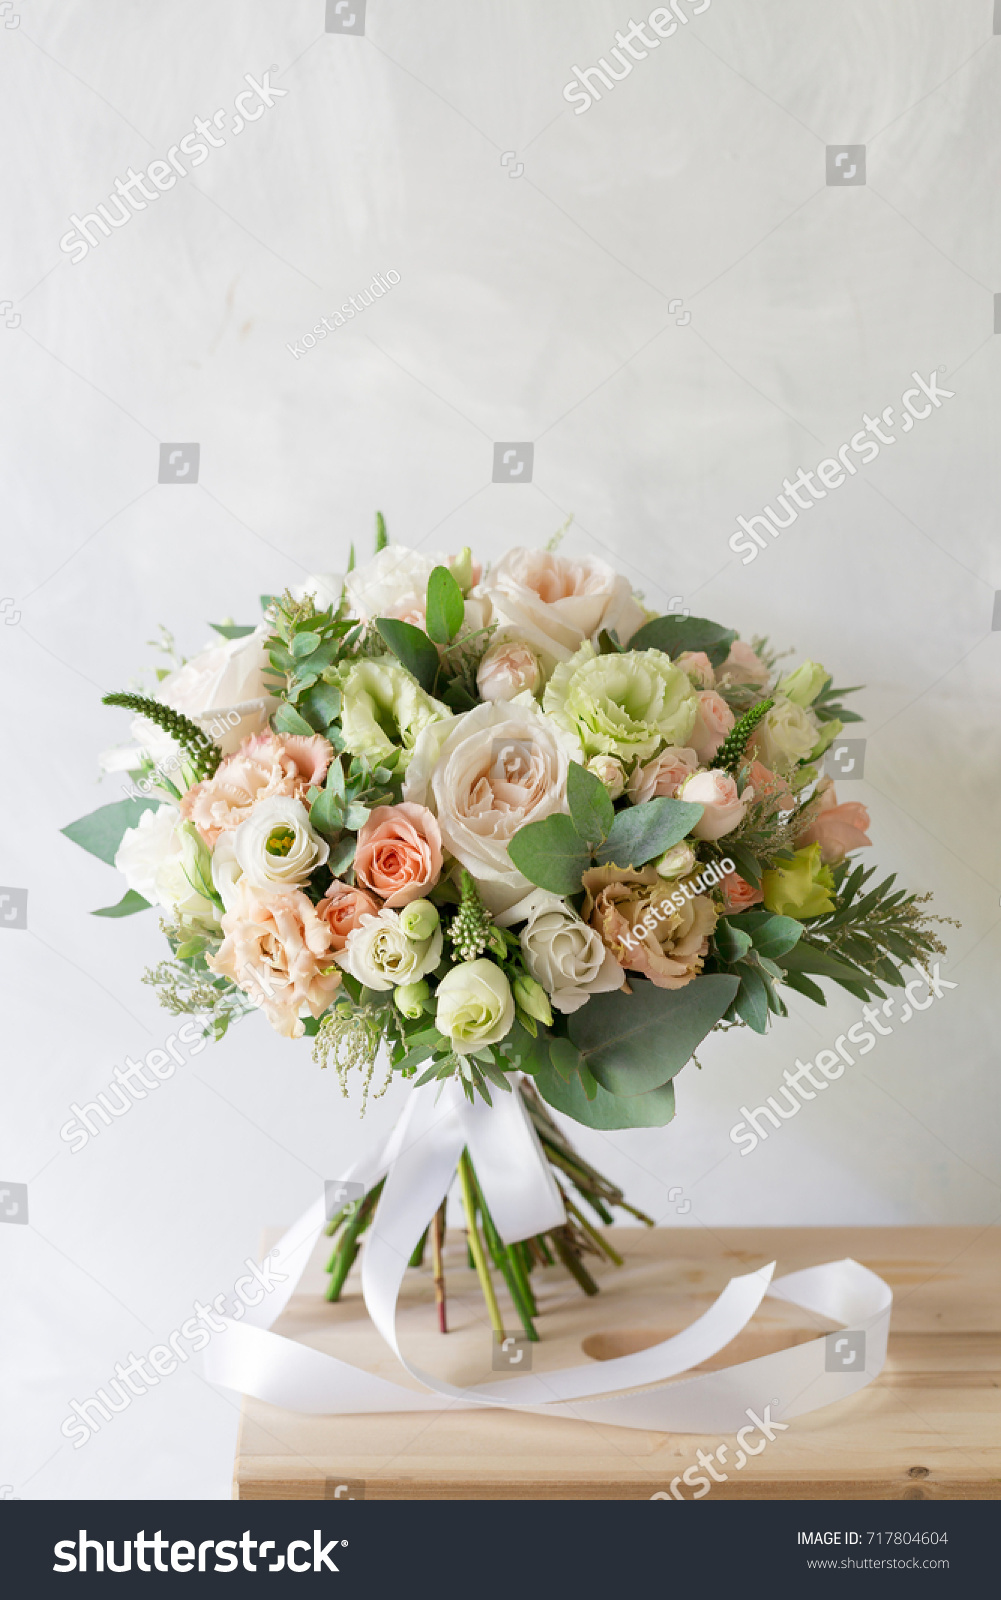 Bridal bouquet simple bouquet flowers greens stock photo royalty bridal bouquet a simple bouquet of flowers and greens izmirmasajfo